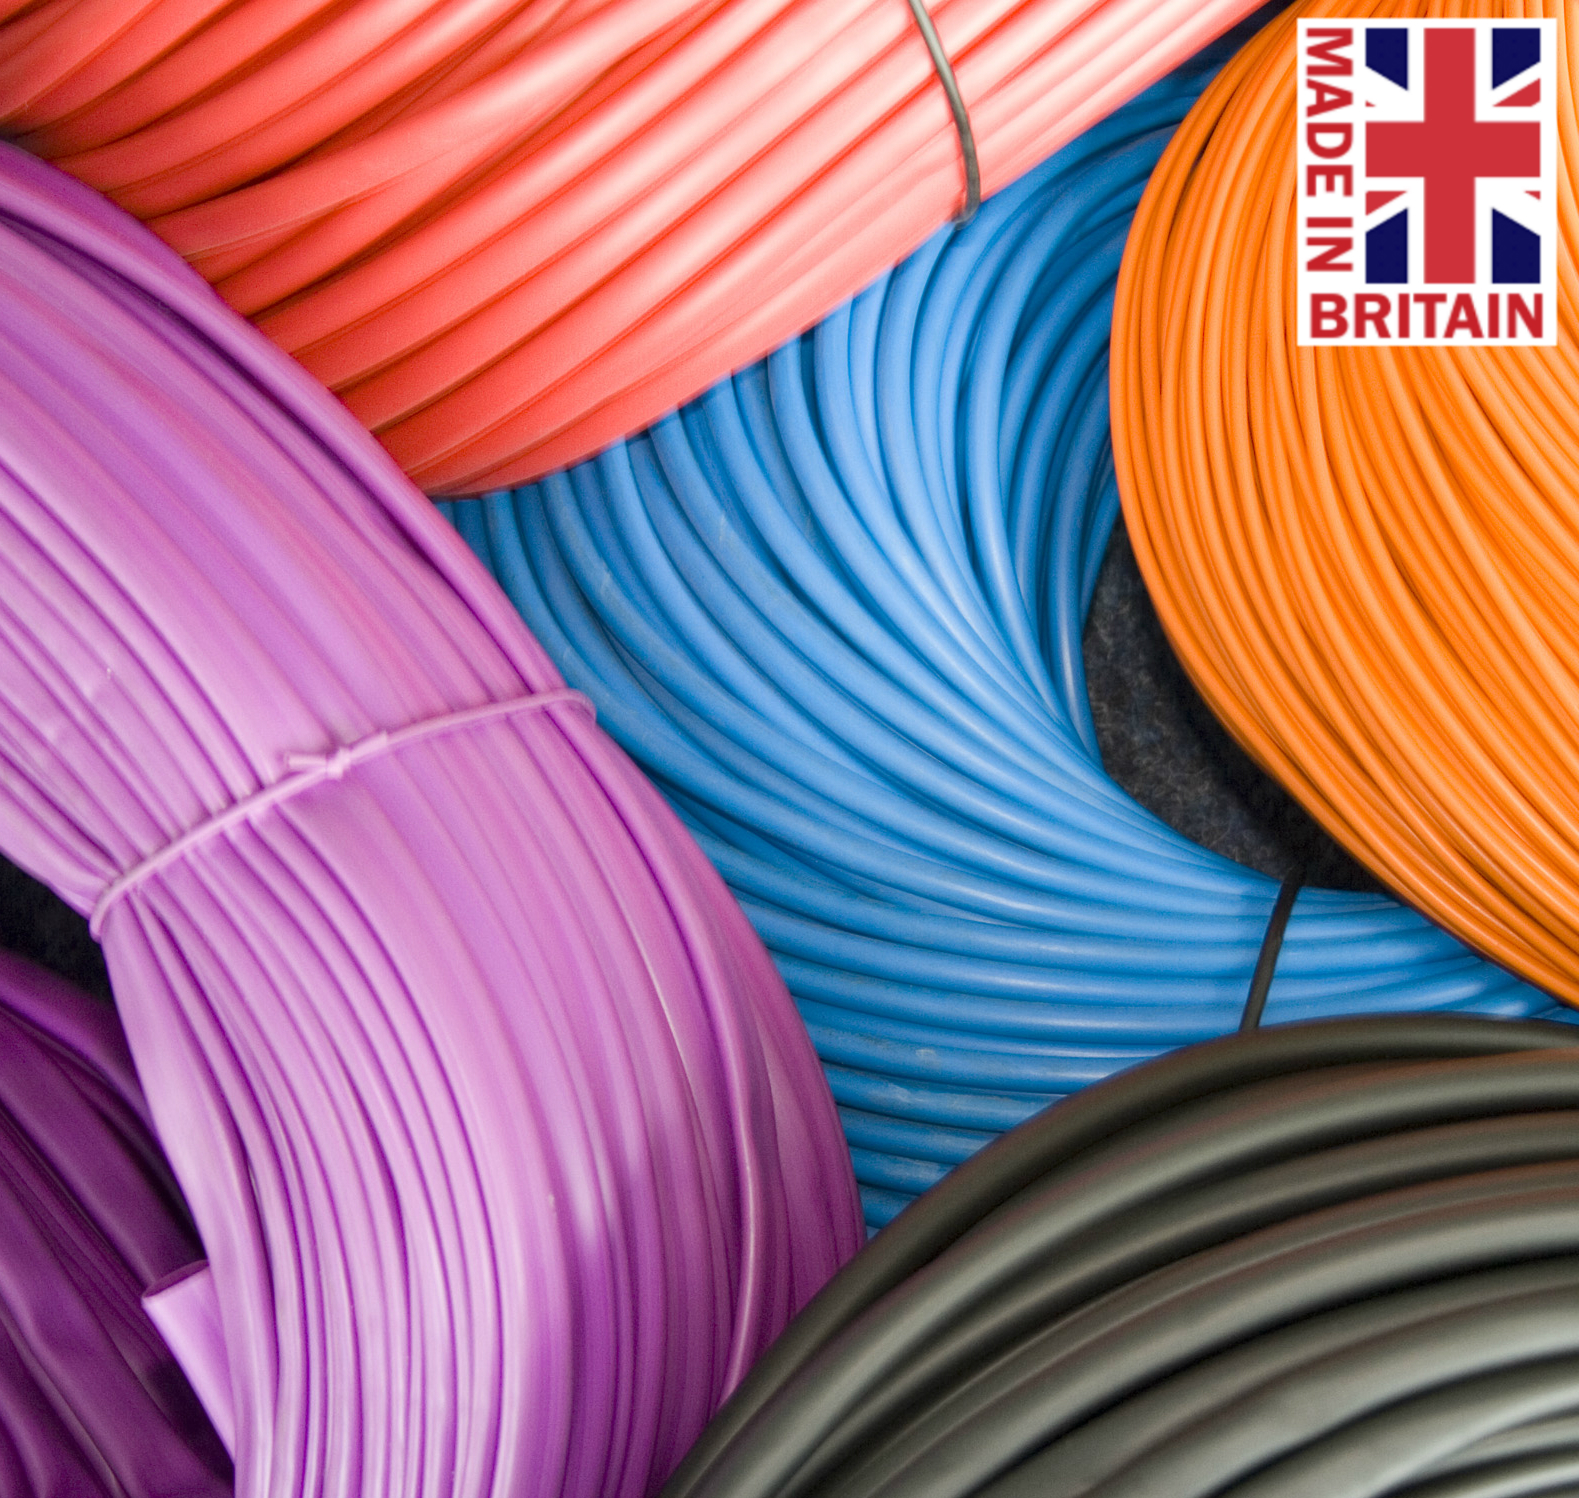 Pvc Tubing And Sleeving Non Shrink Hilltop Products Ltd Wire Harness 05mm Wall